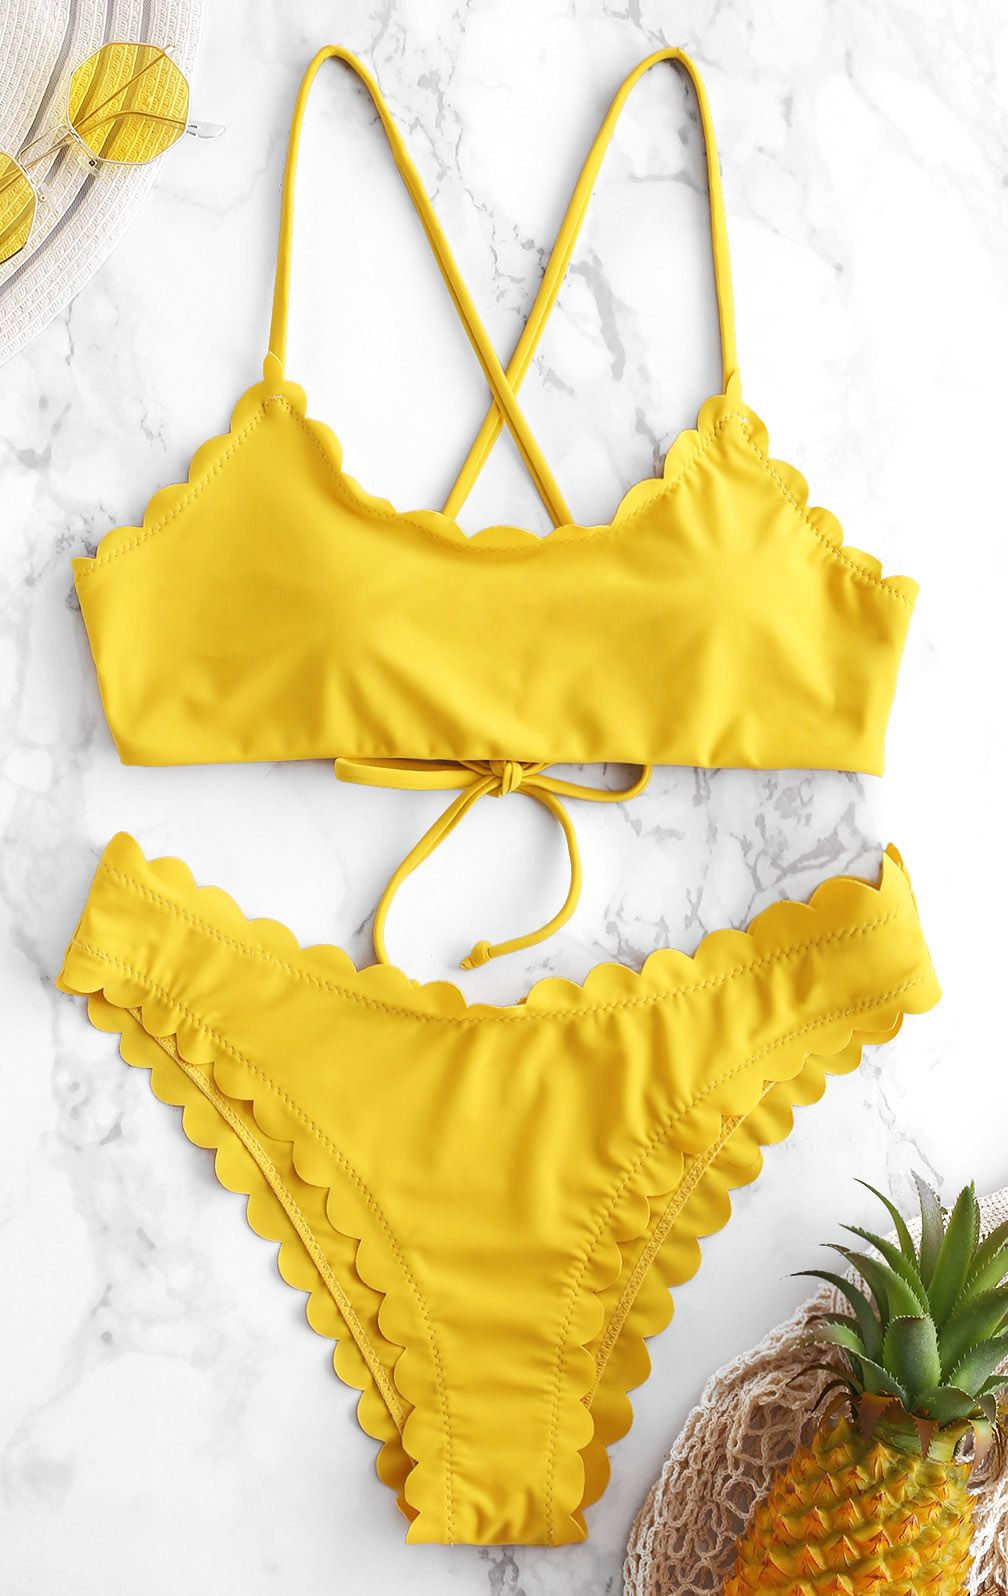 d3731489e6 Give your vacation-ready wardrobe a colorful twist with this bikini set.  The bralette